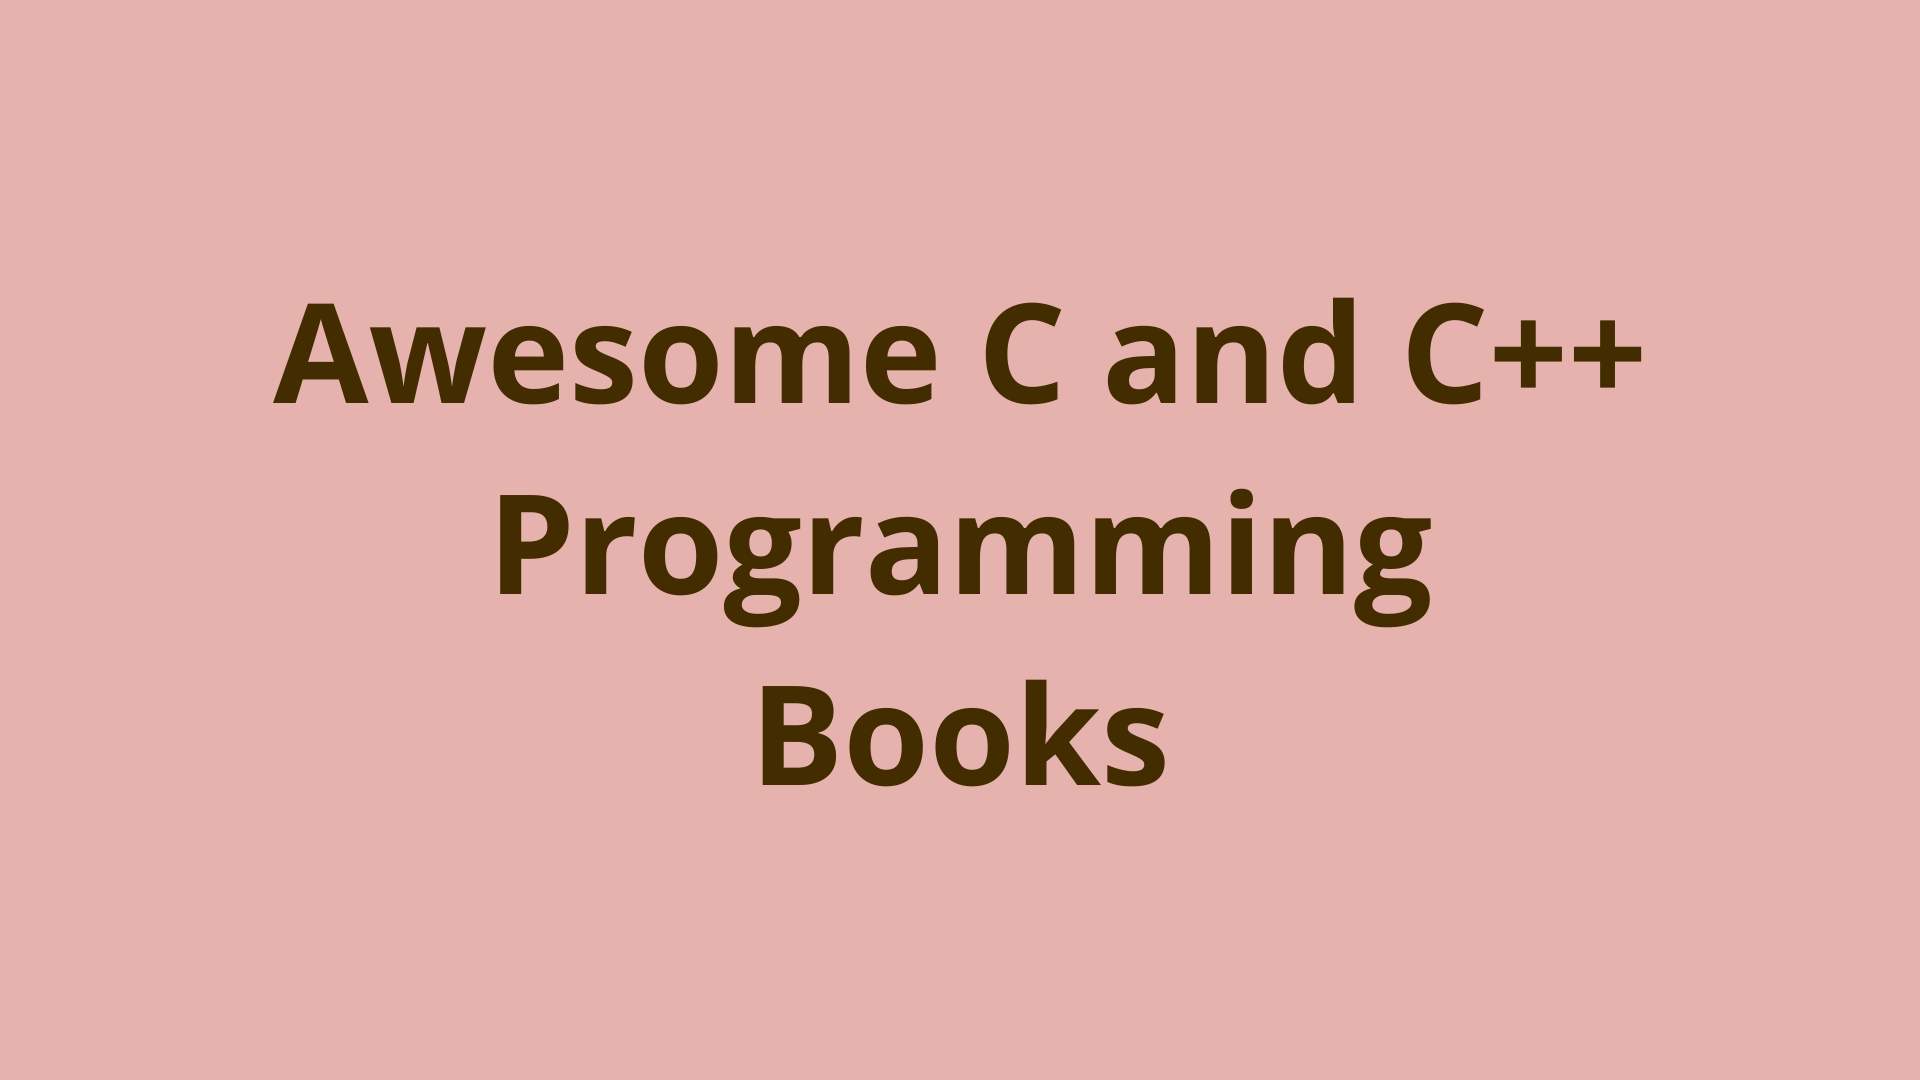 Image of List of awesome C and C++ programming books